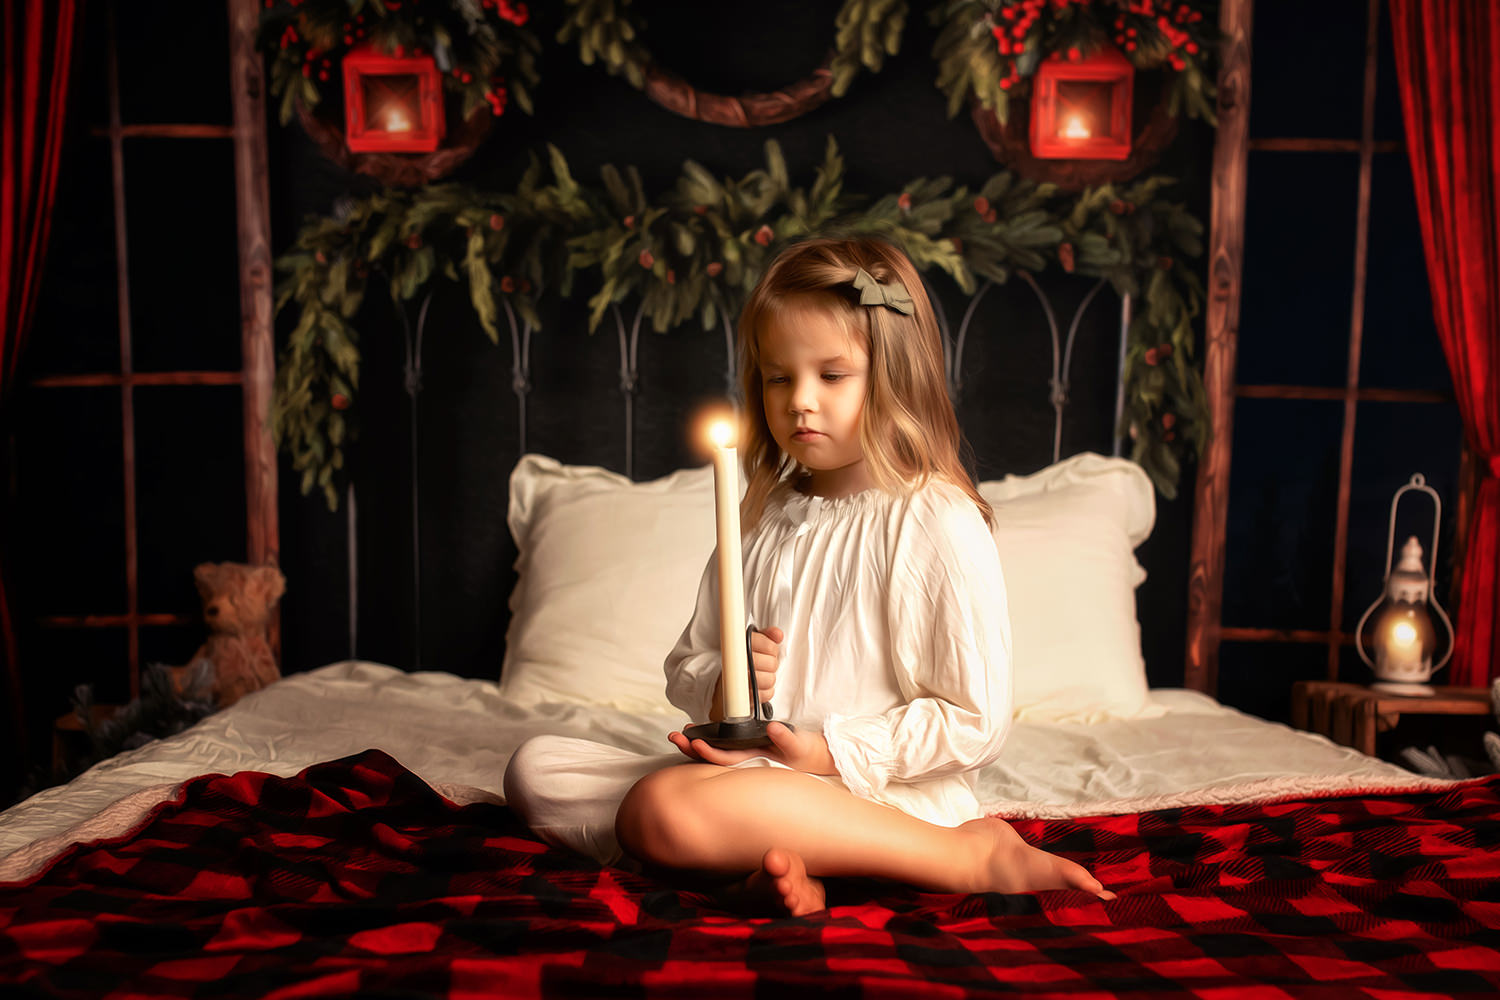 Rochester Christmas Mini Sessions - Child on bed with Candle at Christmas